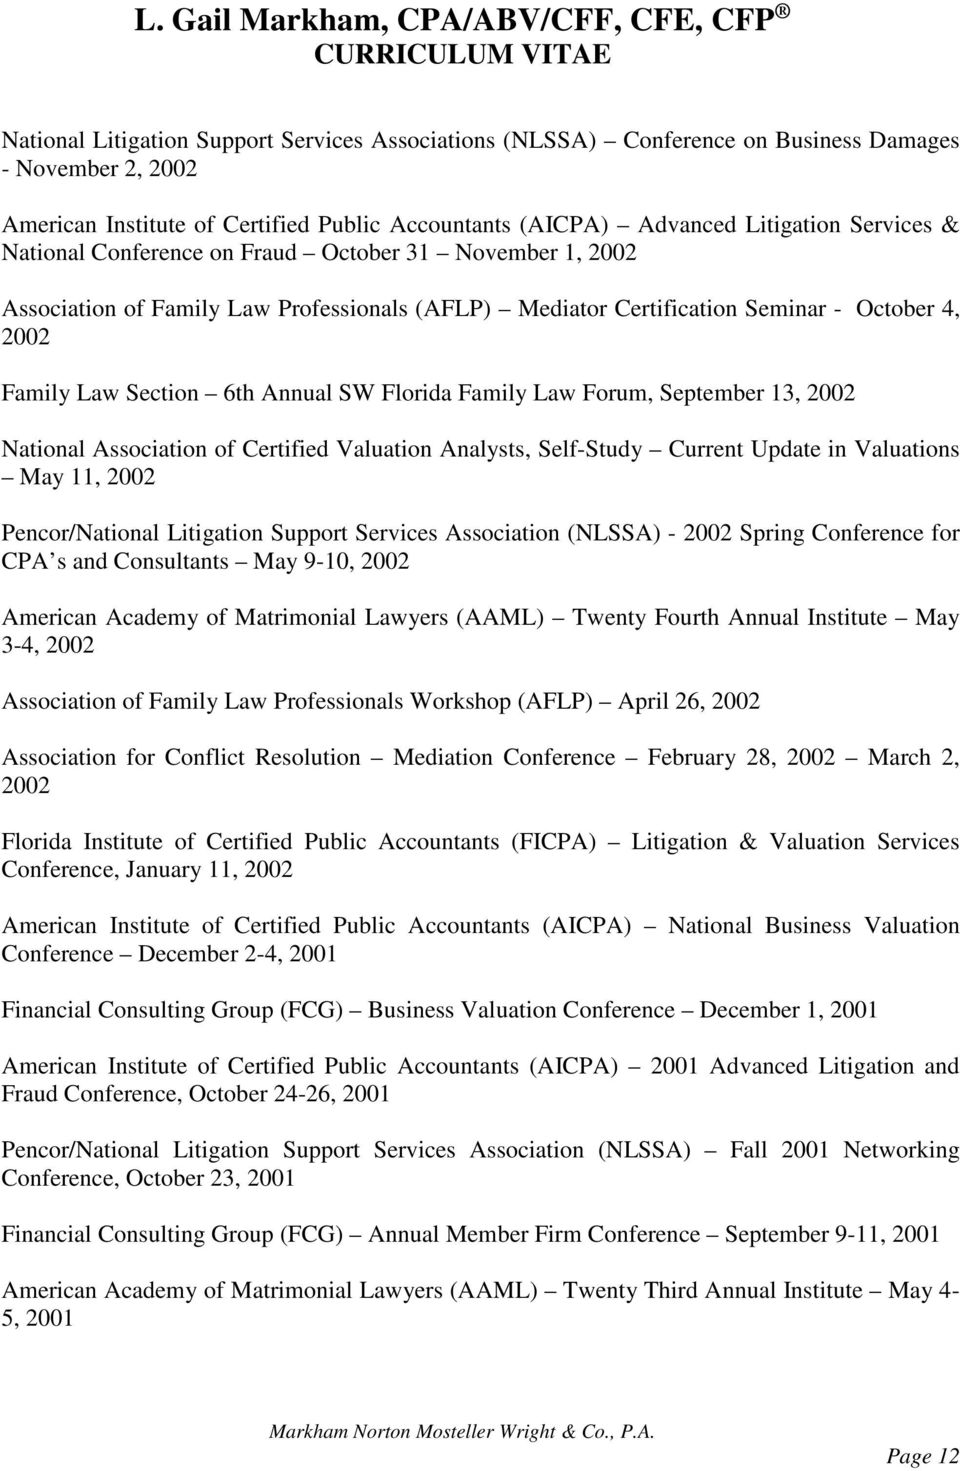 Law Section 6th Annual SW Florida Family Law Forum, September 13, 2002 National Association of Certified Valuation Analysts, Self-Study Current Update in Valuations May 11, 2002 Pencor/National